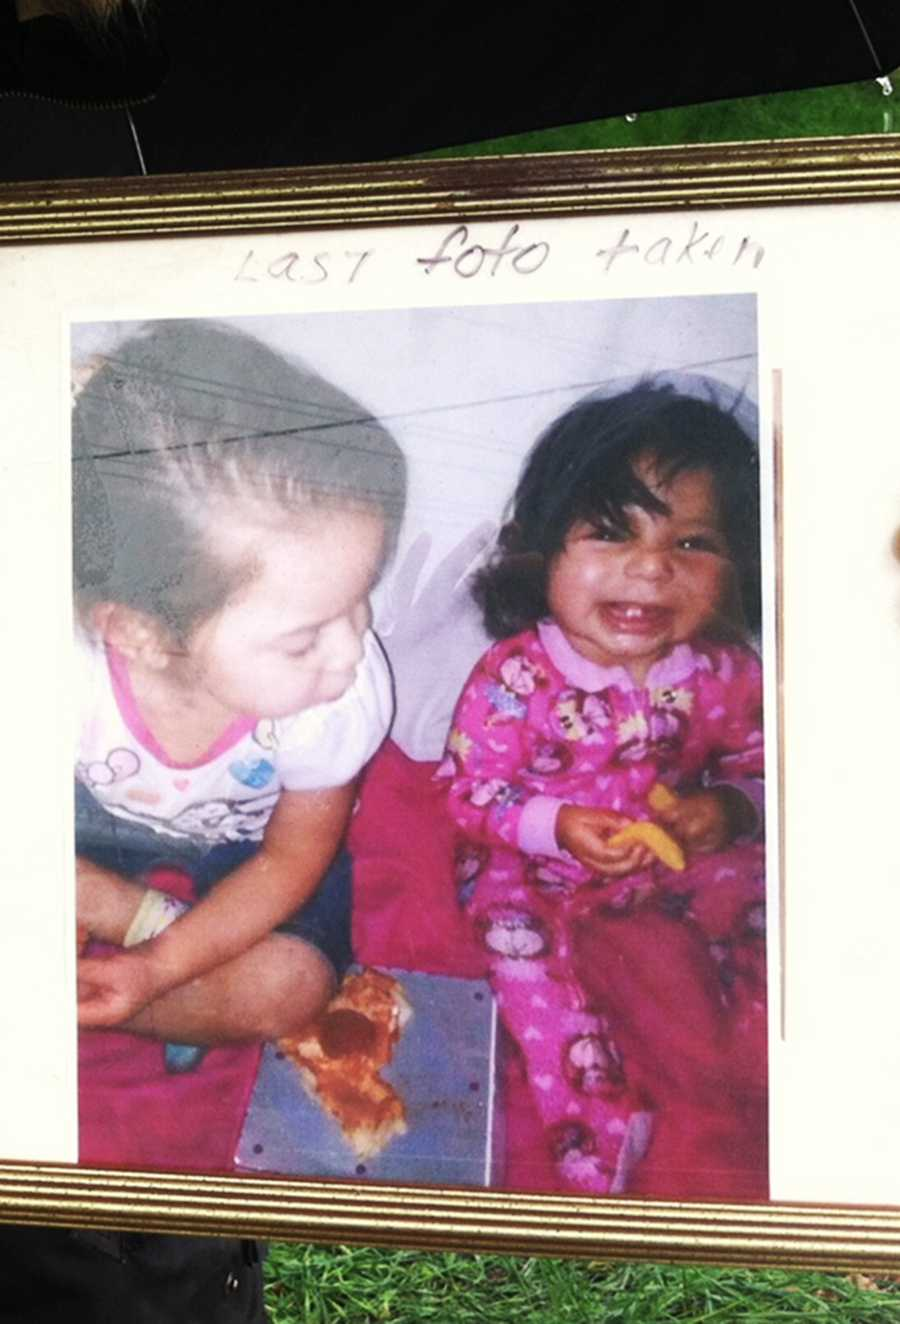 This is the last known photo taken of baby Angelle Jenisis Negronbefore she was slain.